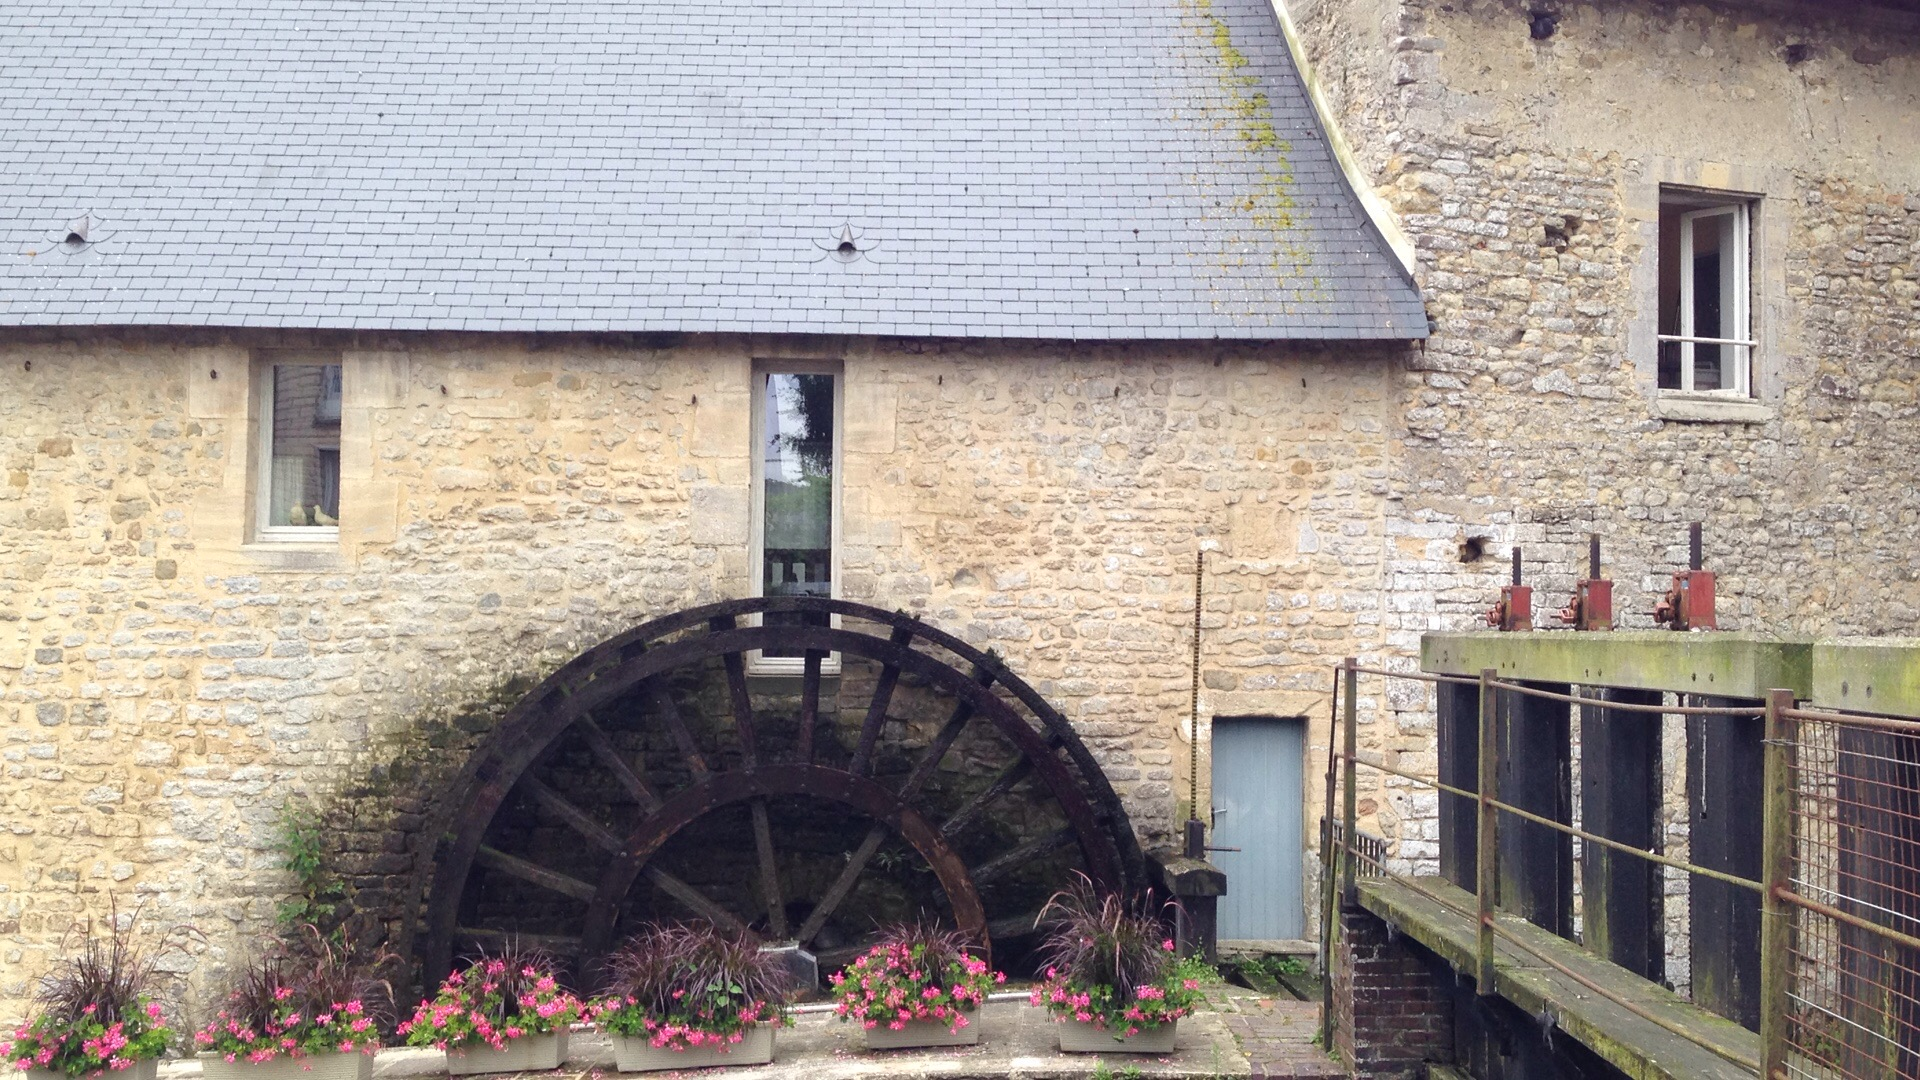 water wheel in bayeux france